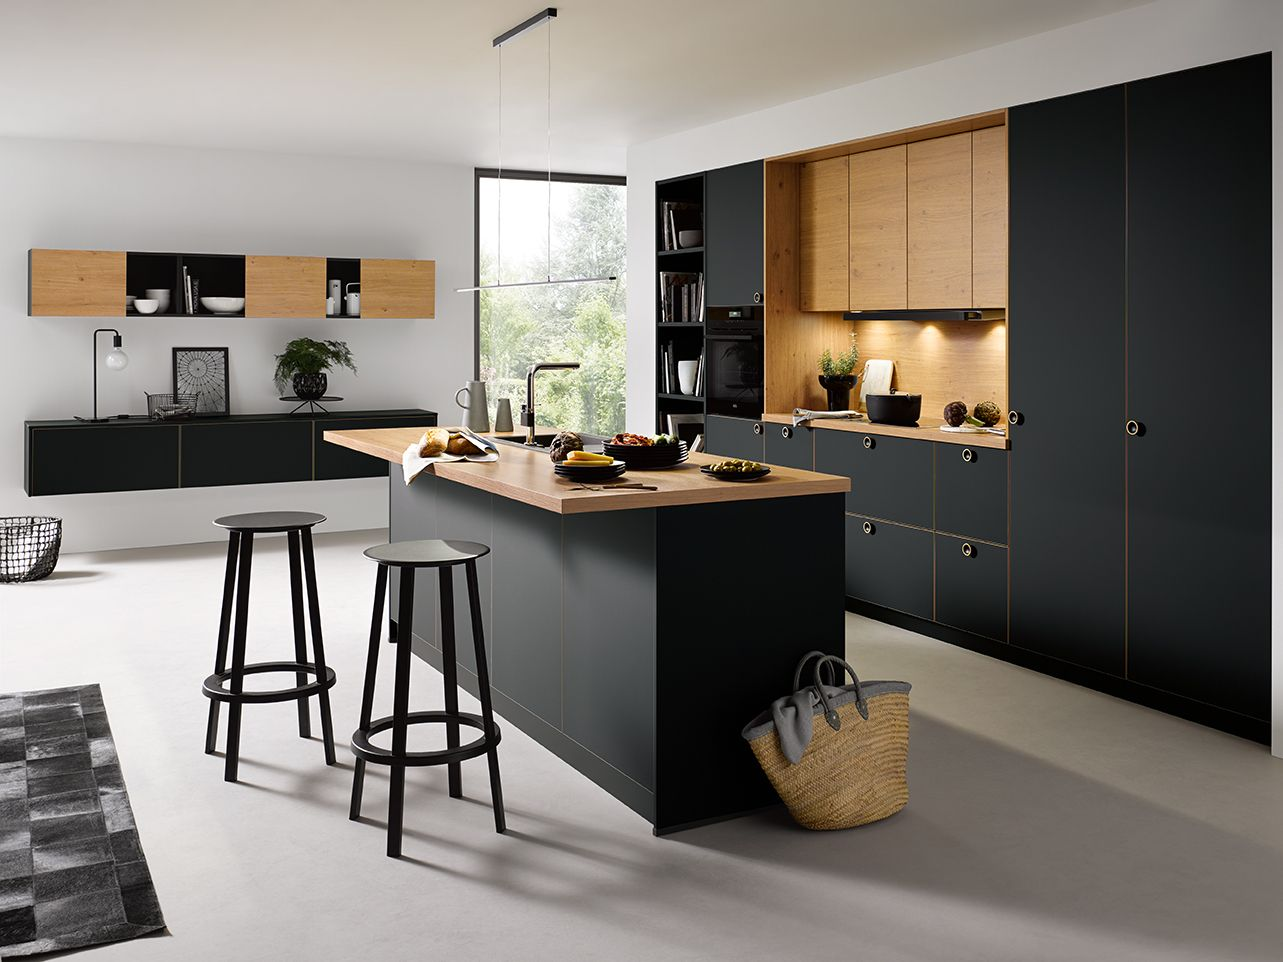 Onyx Black Kitchen Modern Kitchen Design Kitchen Room Design Kitchen Design